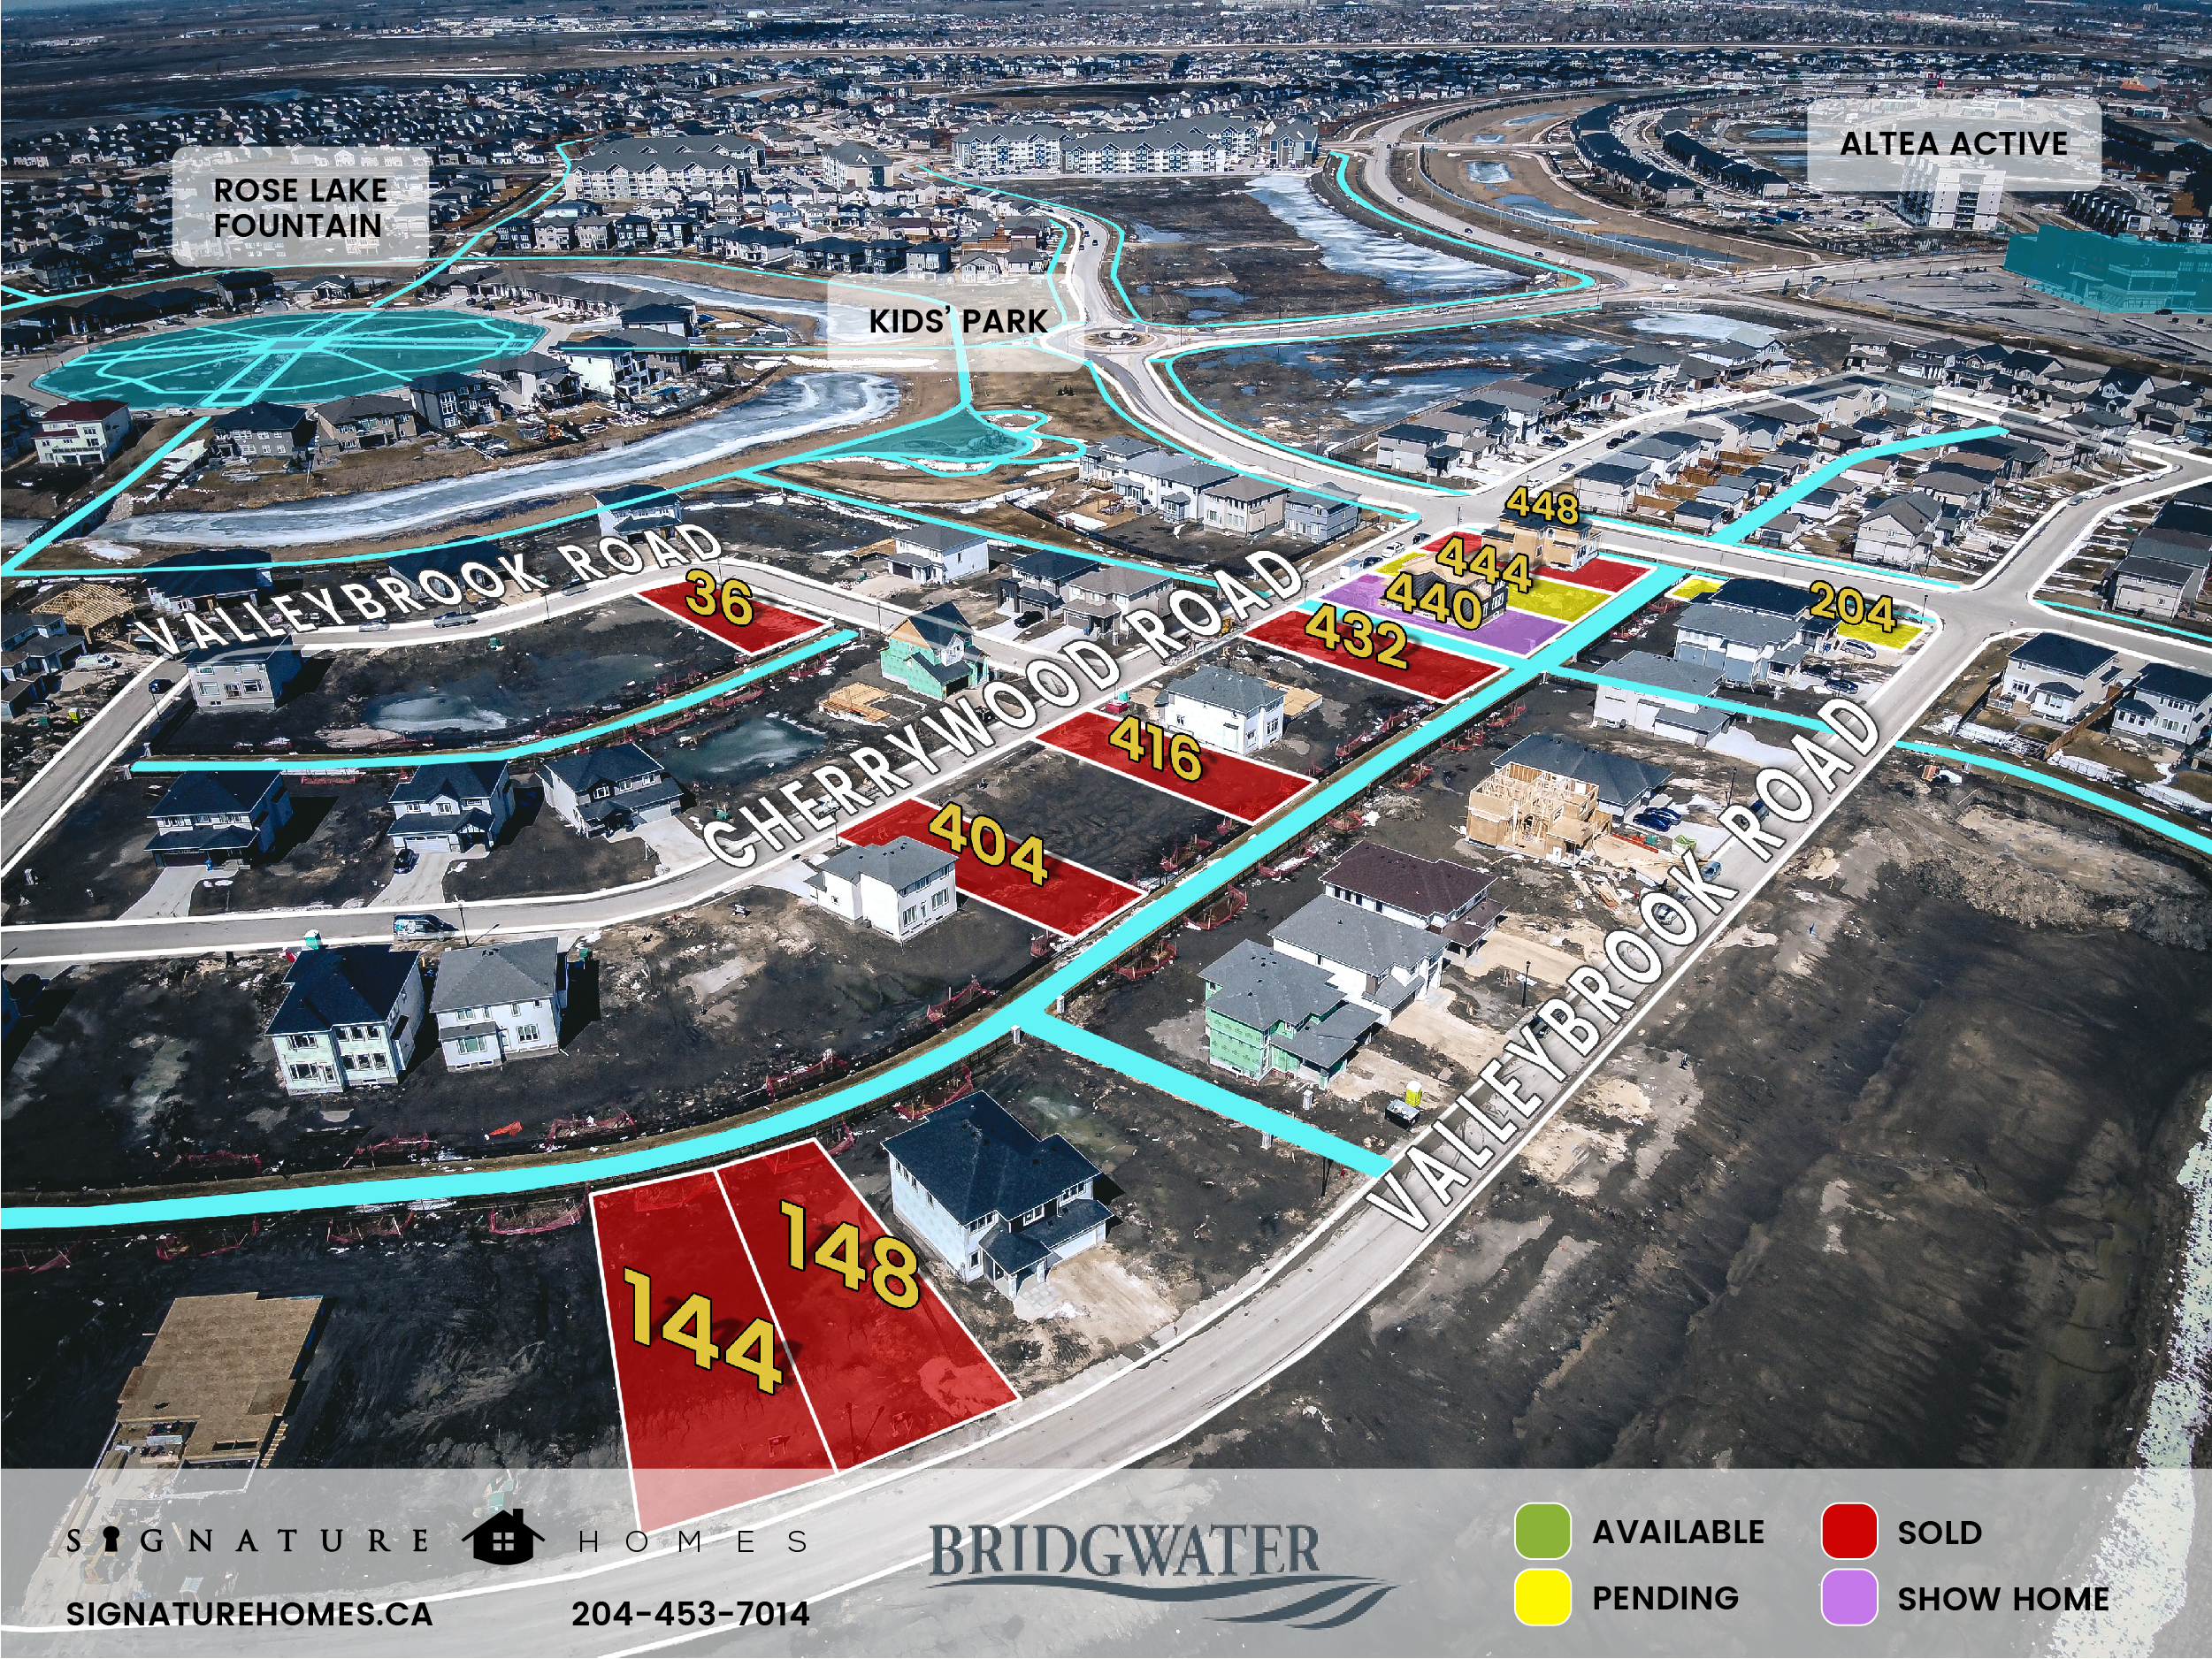 Bridgwater Phase 5 Map, Signature Homes, Winnipeg Manitoba